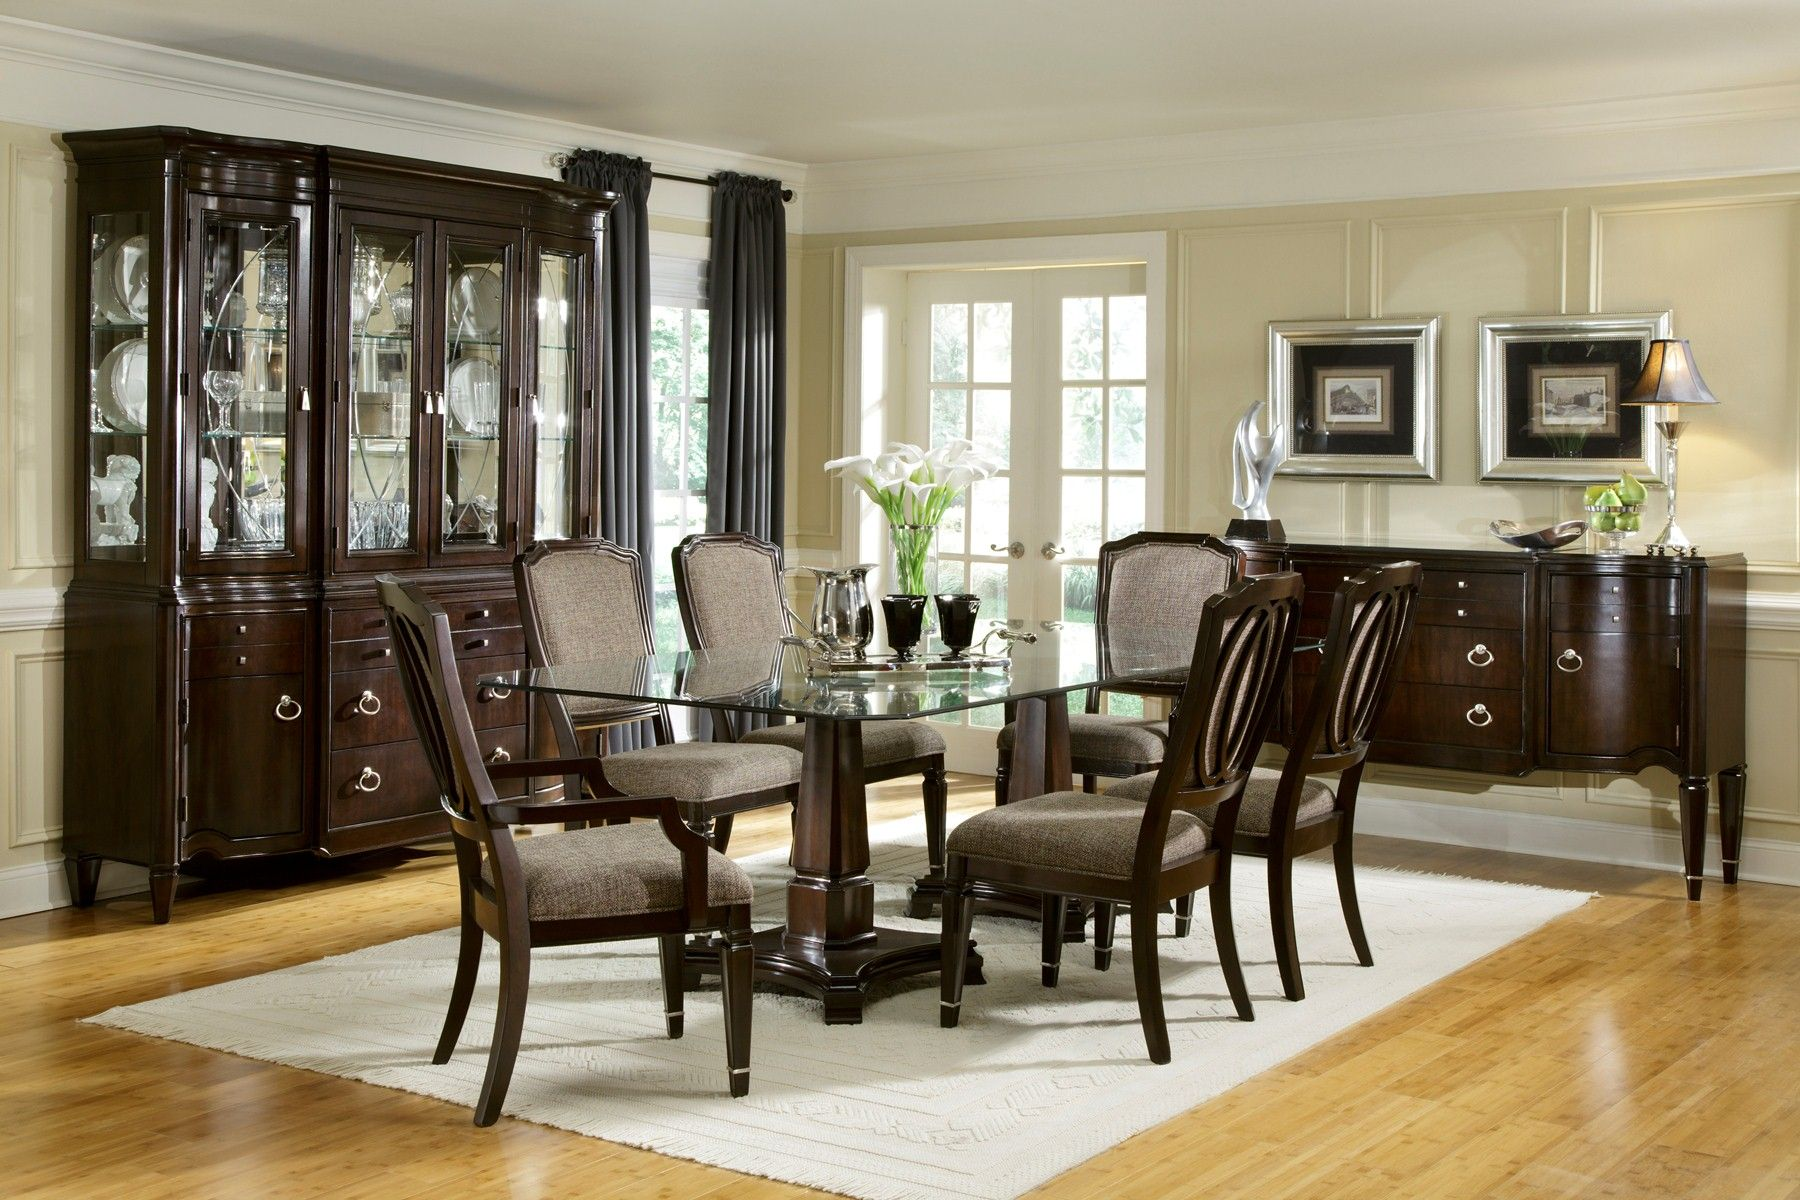 Top Awesome Brilliant Dining Room Glass Dining Table amazing glass